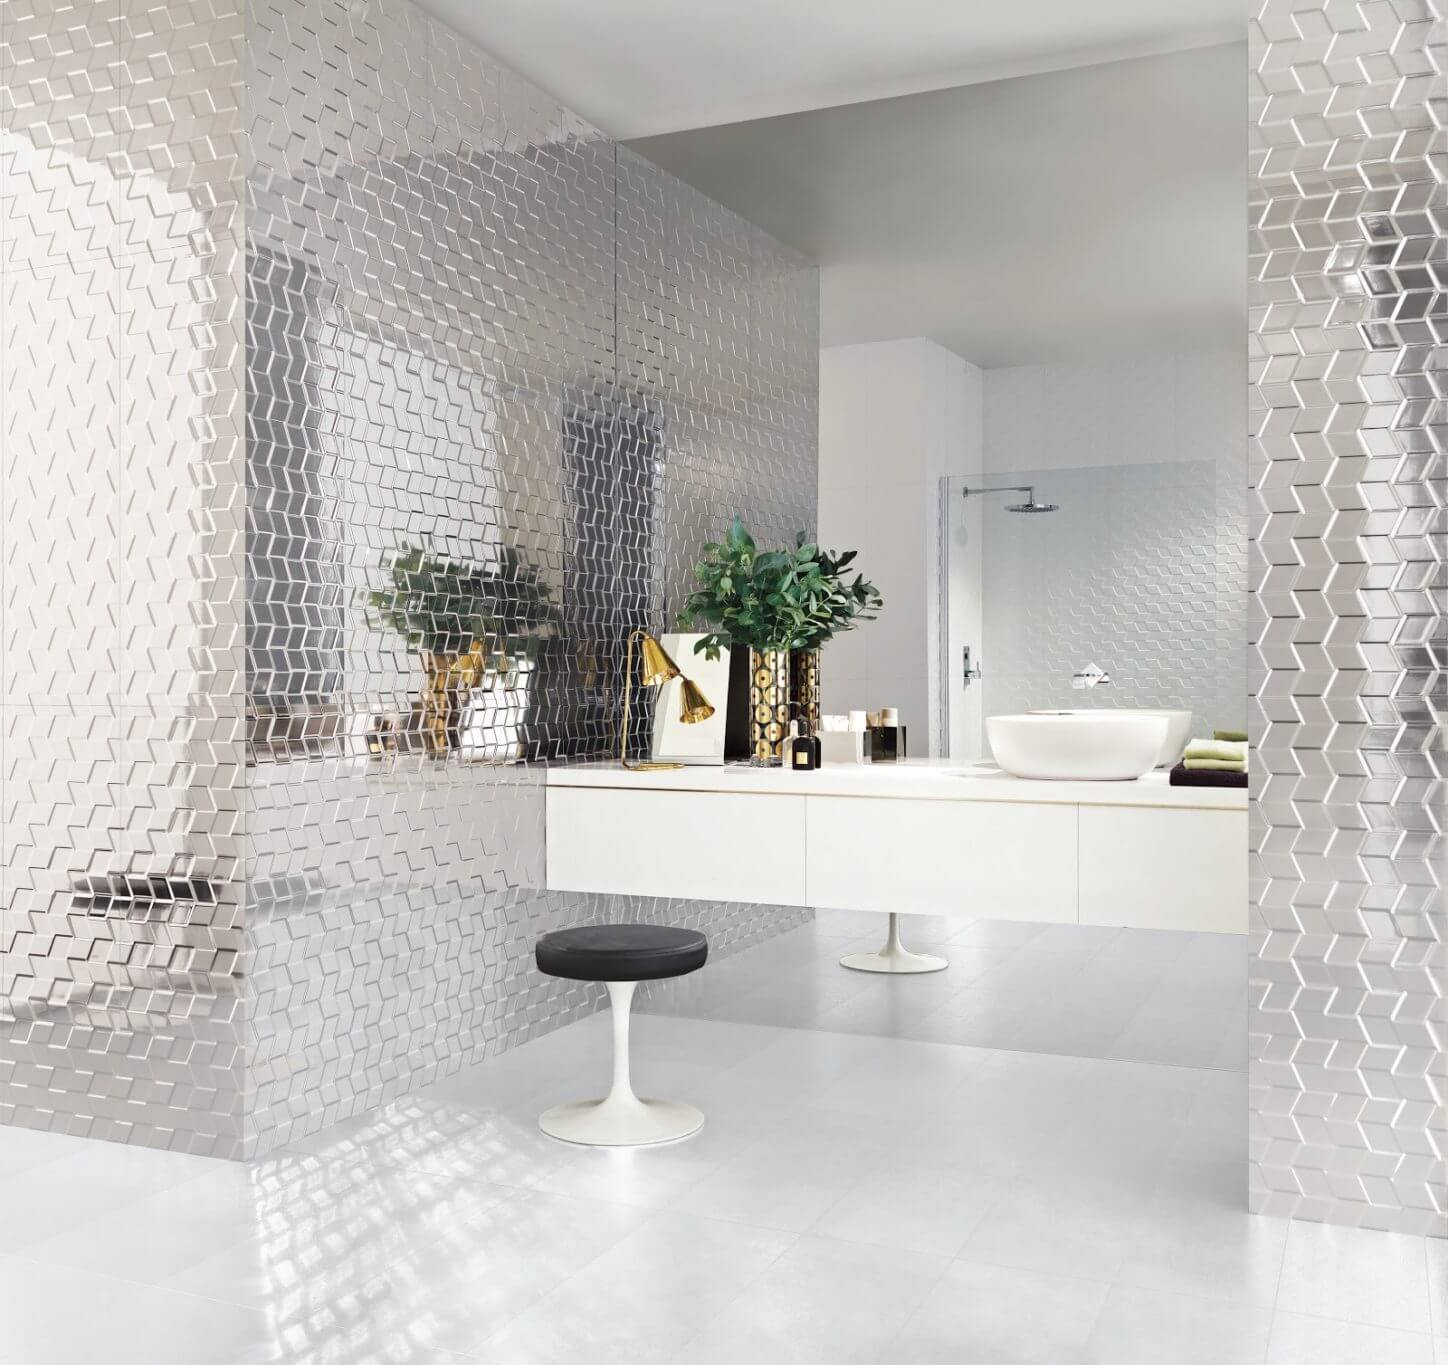 Bathroom with metallic tile walls